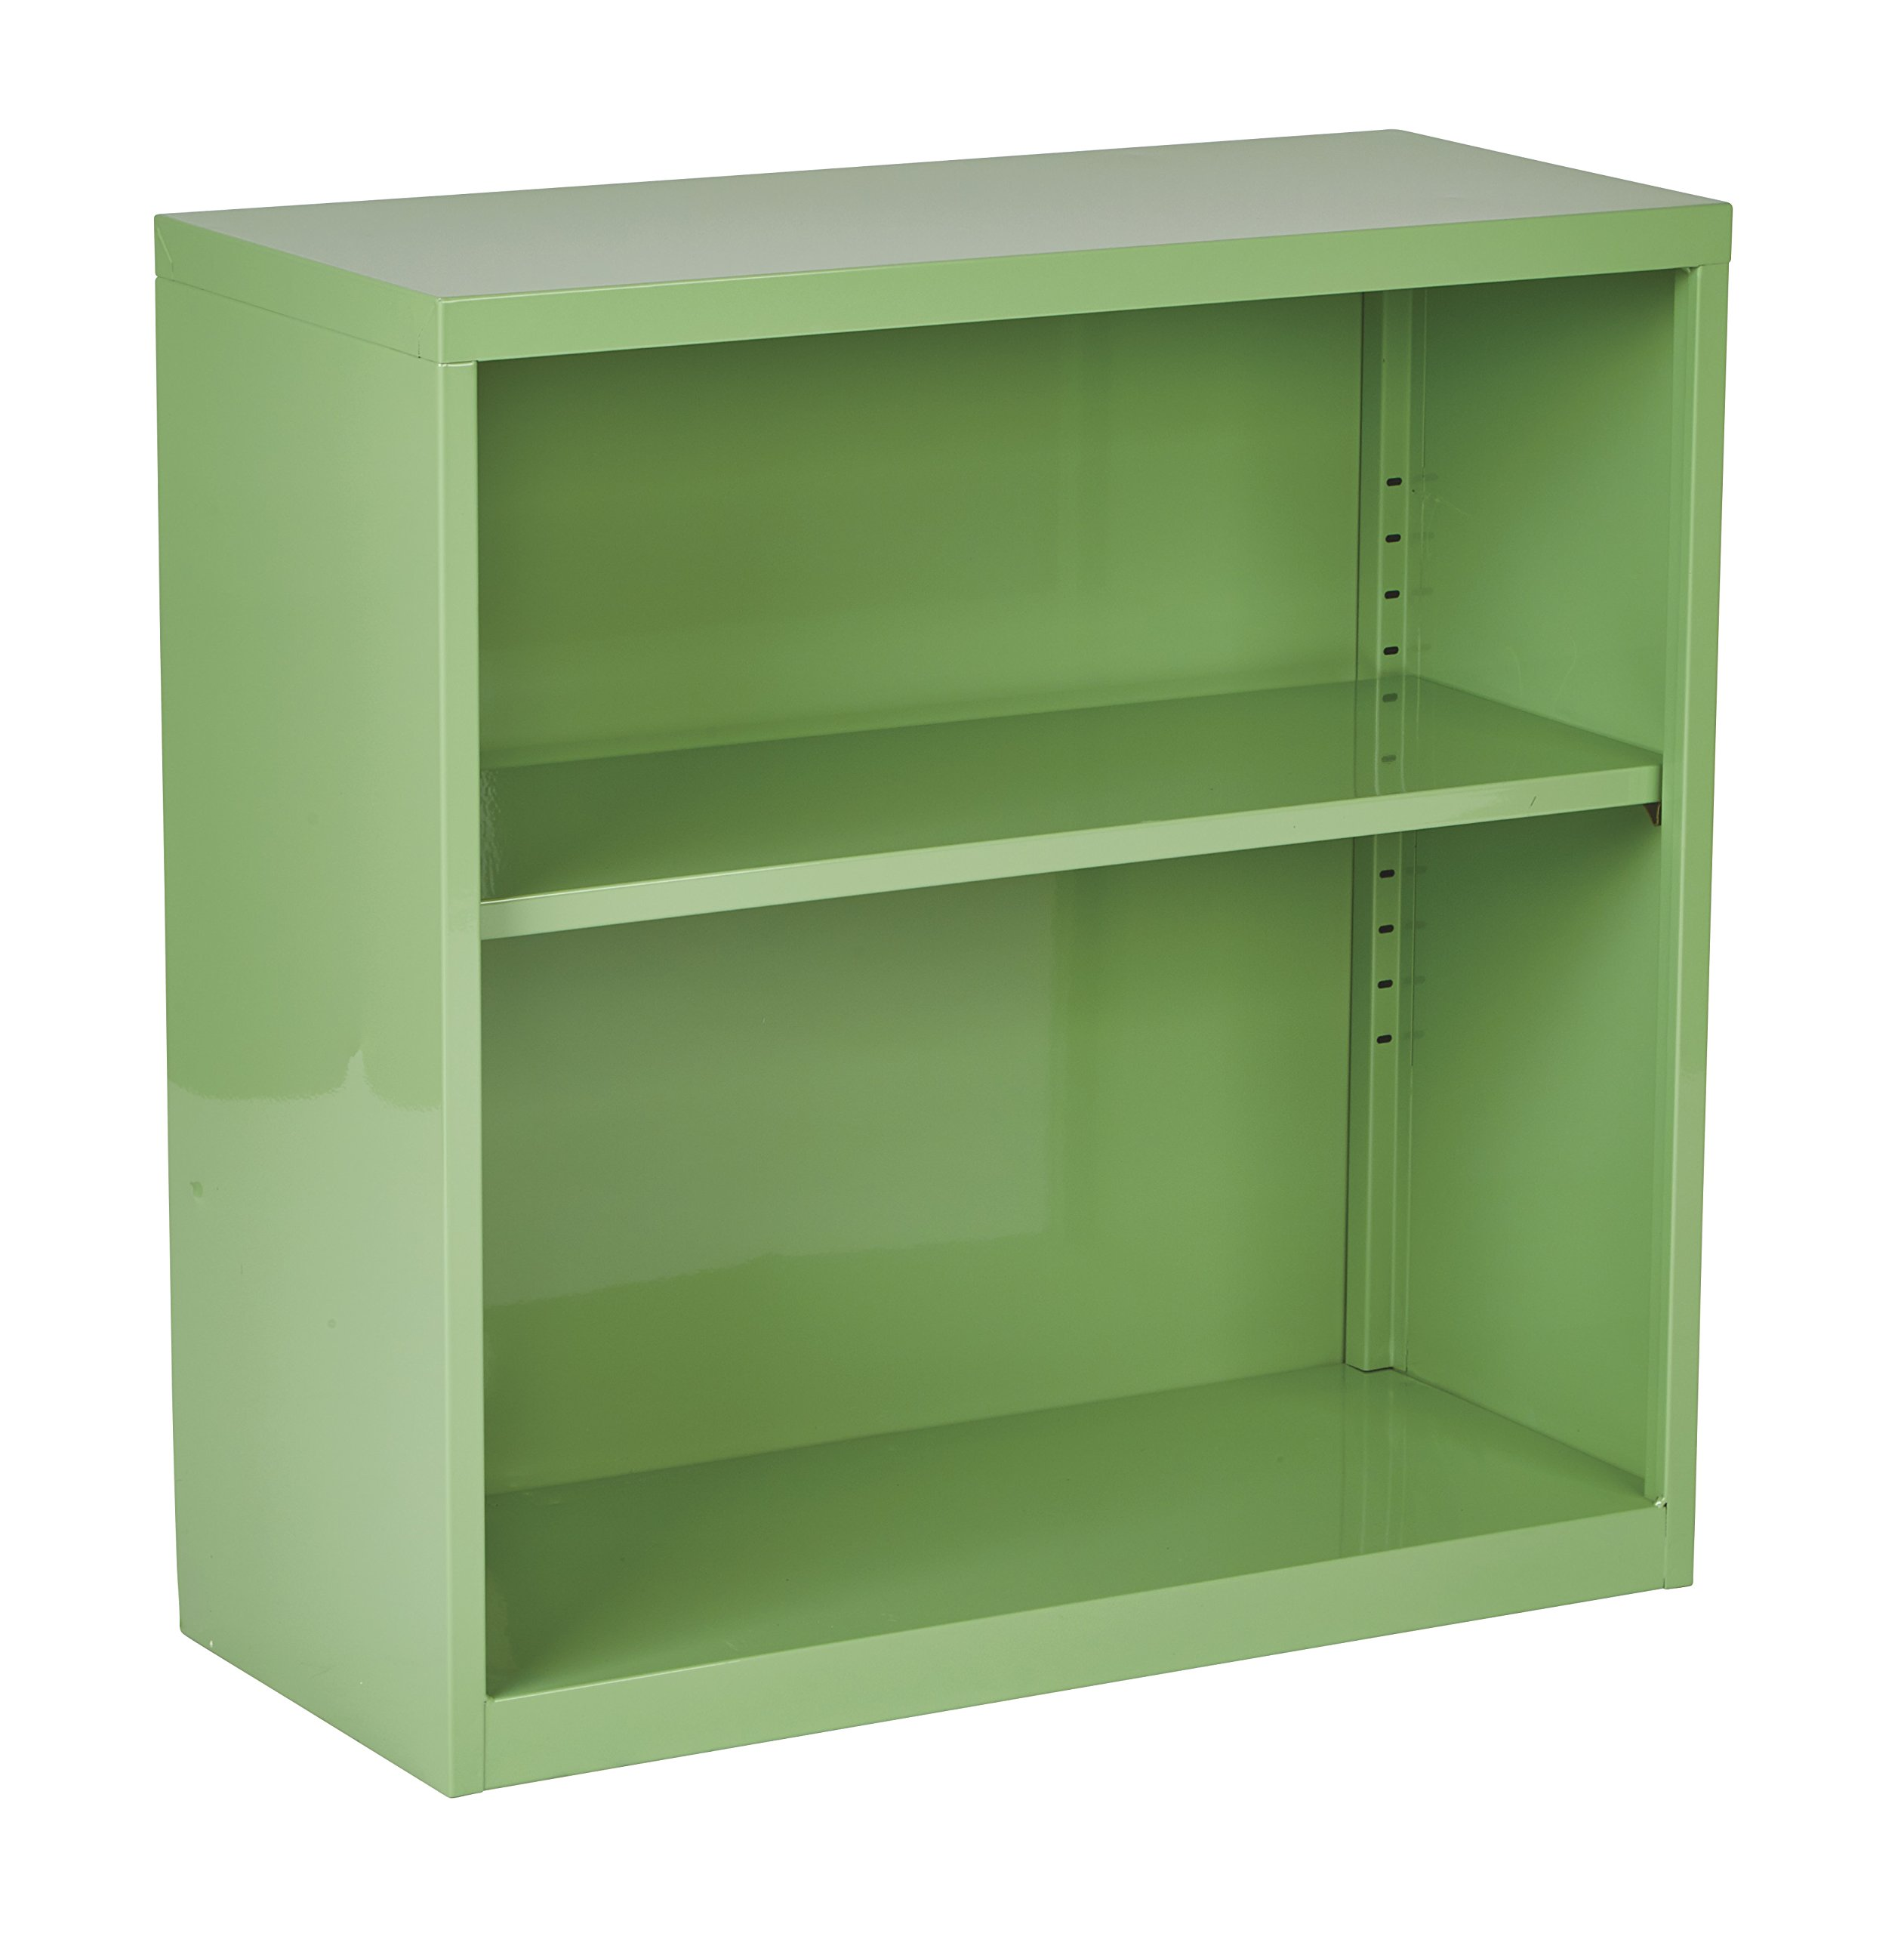 OSP Designs Metal Bookcase, Green